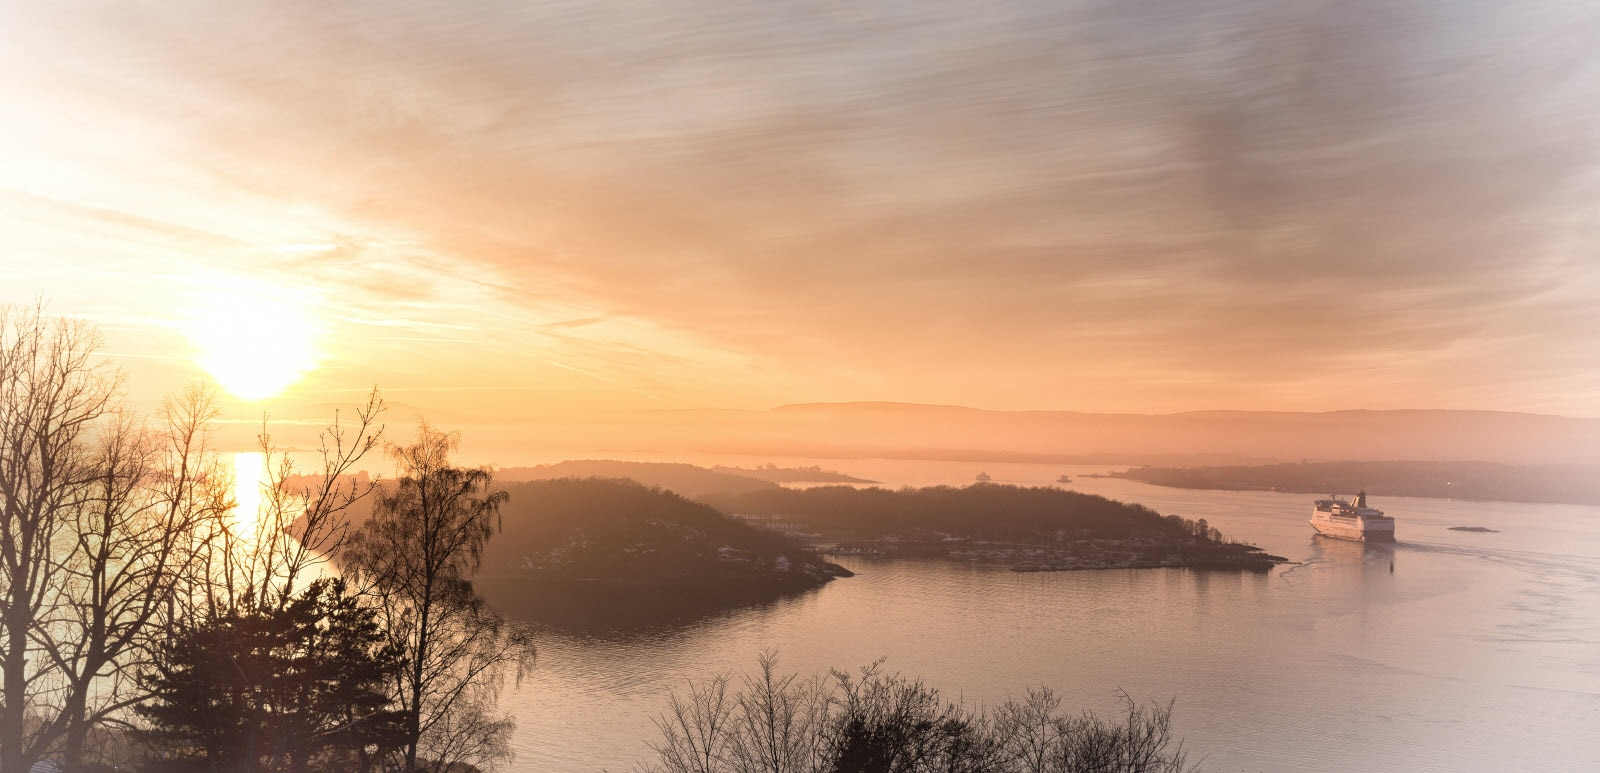 500px_com_by_Tore_S-tre_stock-photo-hoved-ya-98767.jpg